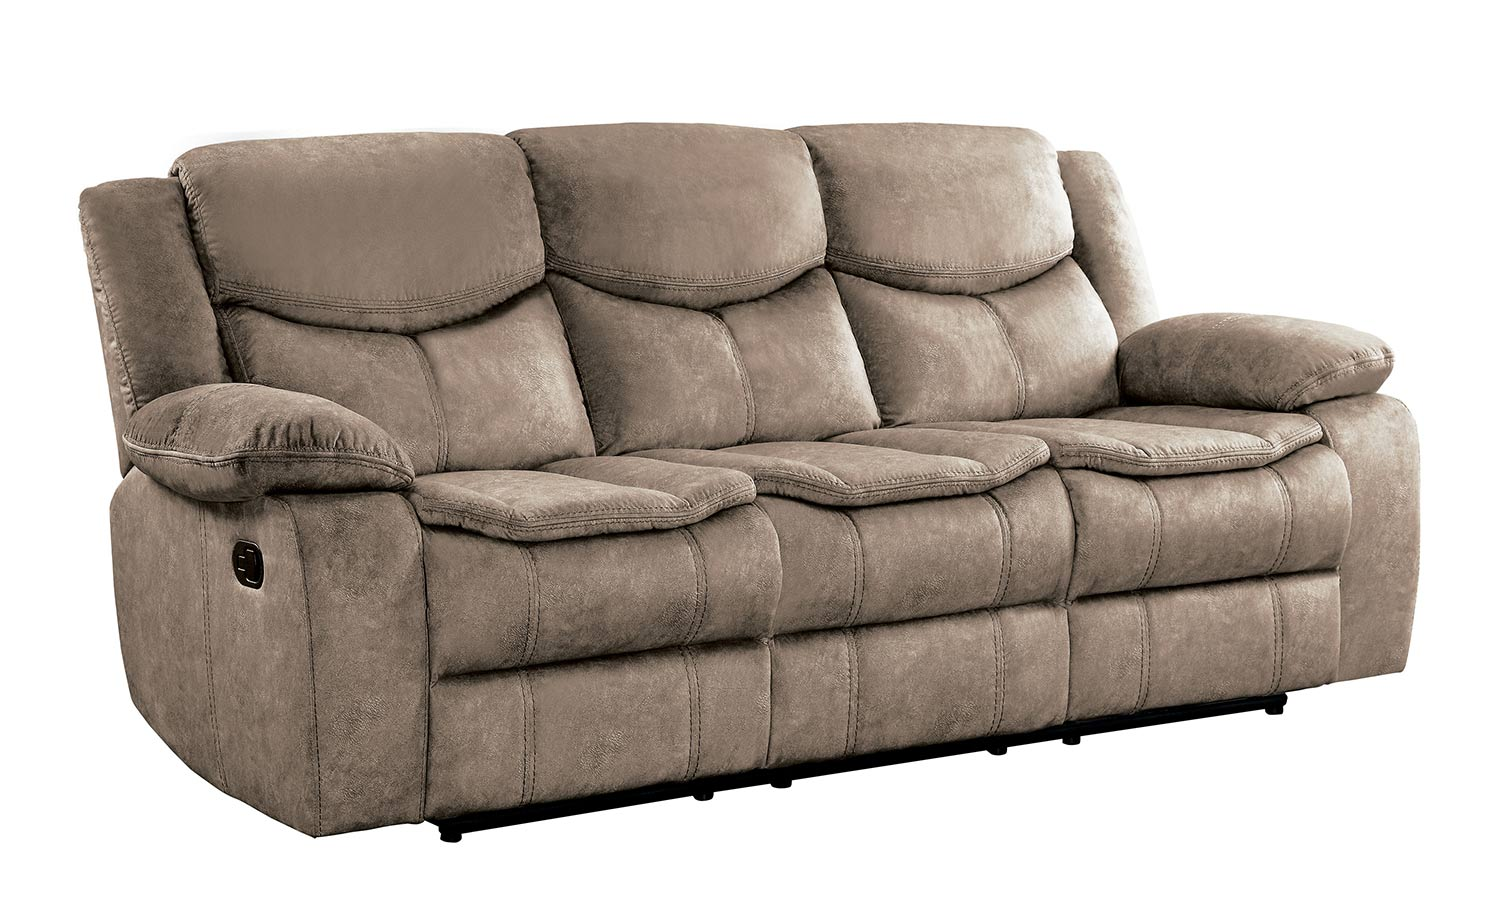 Homelegance Bastrop Double Reclining Sofa - Brown